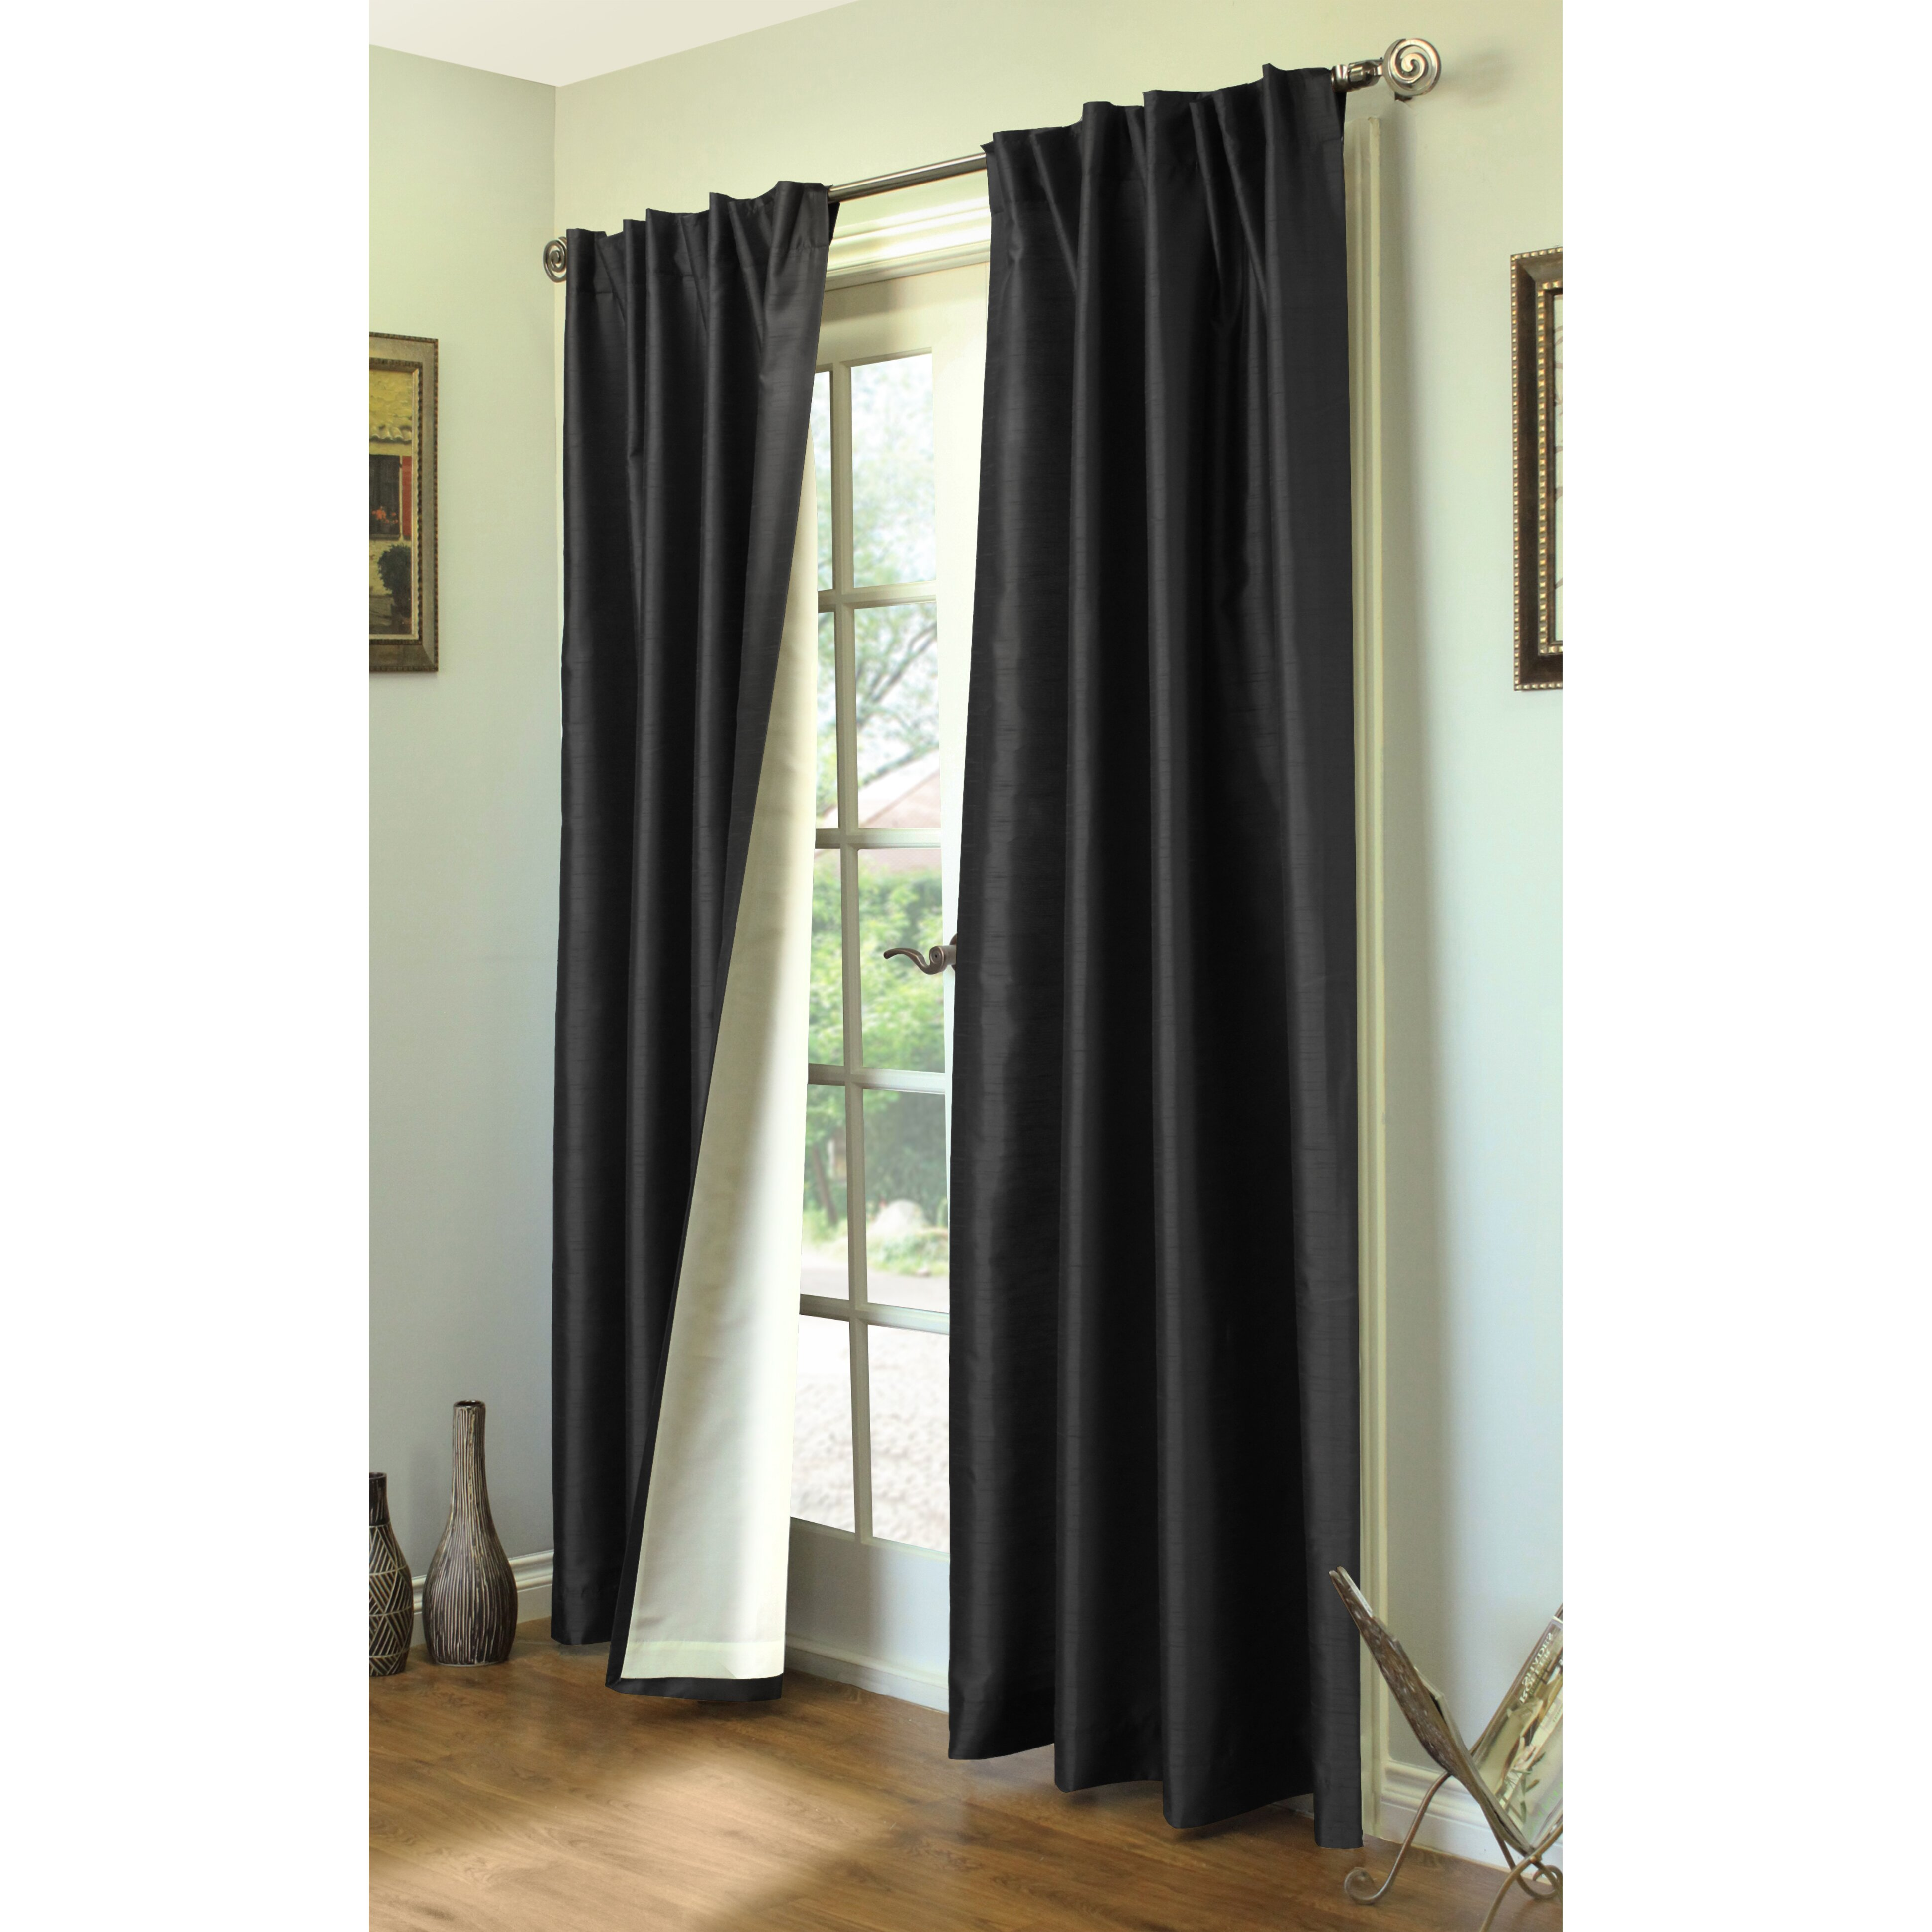 Jcpenney curtains for kids - Curtain Valances Jcpenney D Cor Window Treatments Curtains Drapes Darby Home Co Sku Dbhc5405